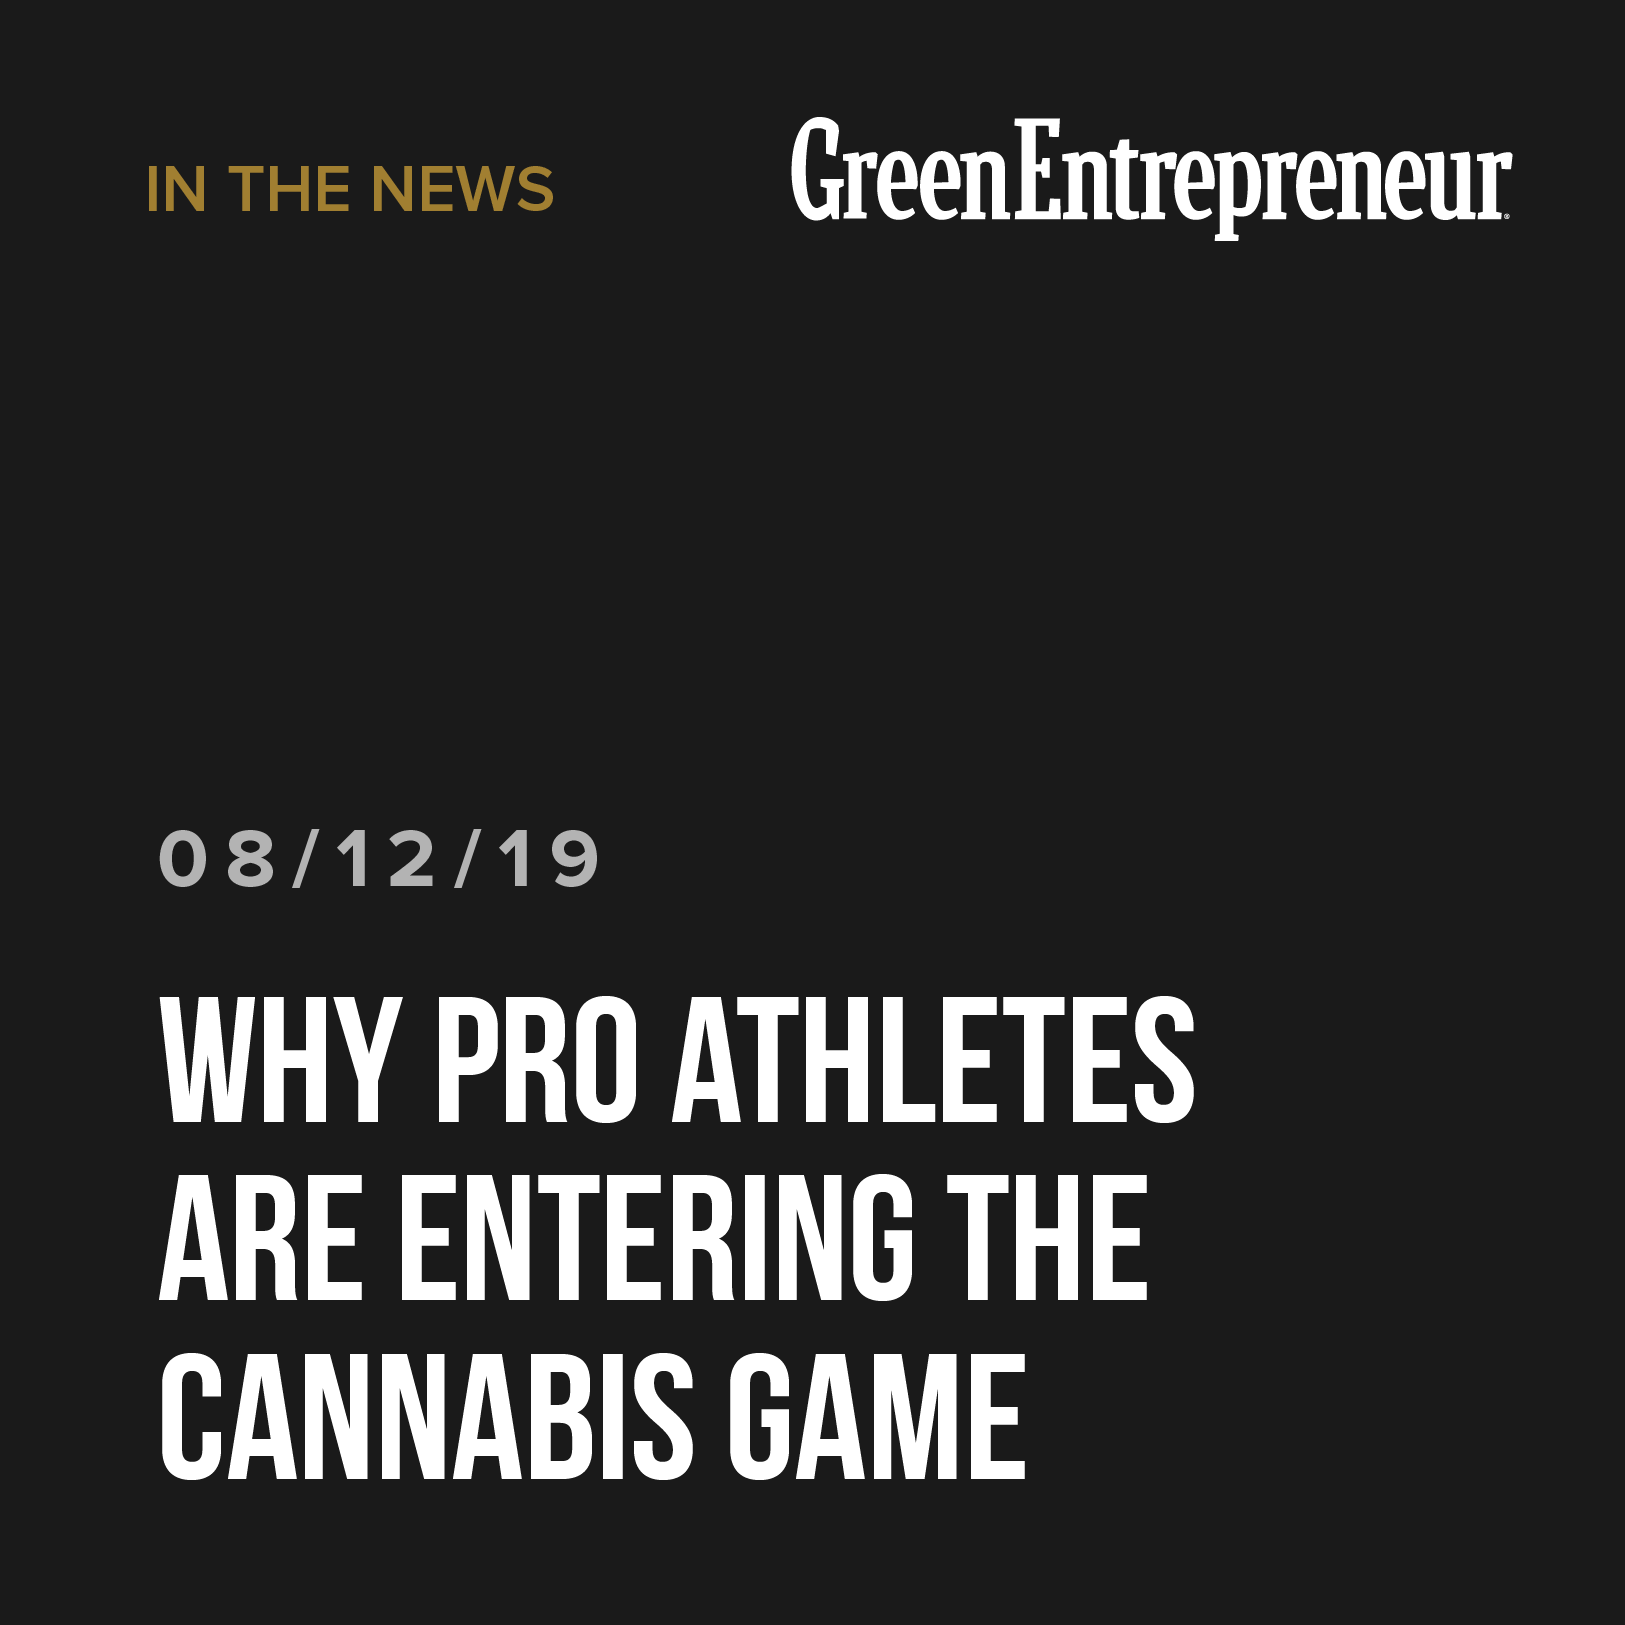 Why Pro Athletes Are Entering the Cannabis Game